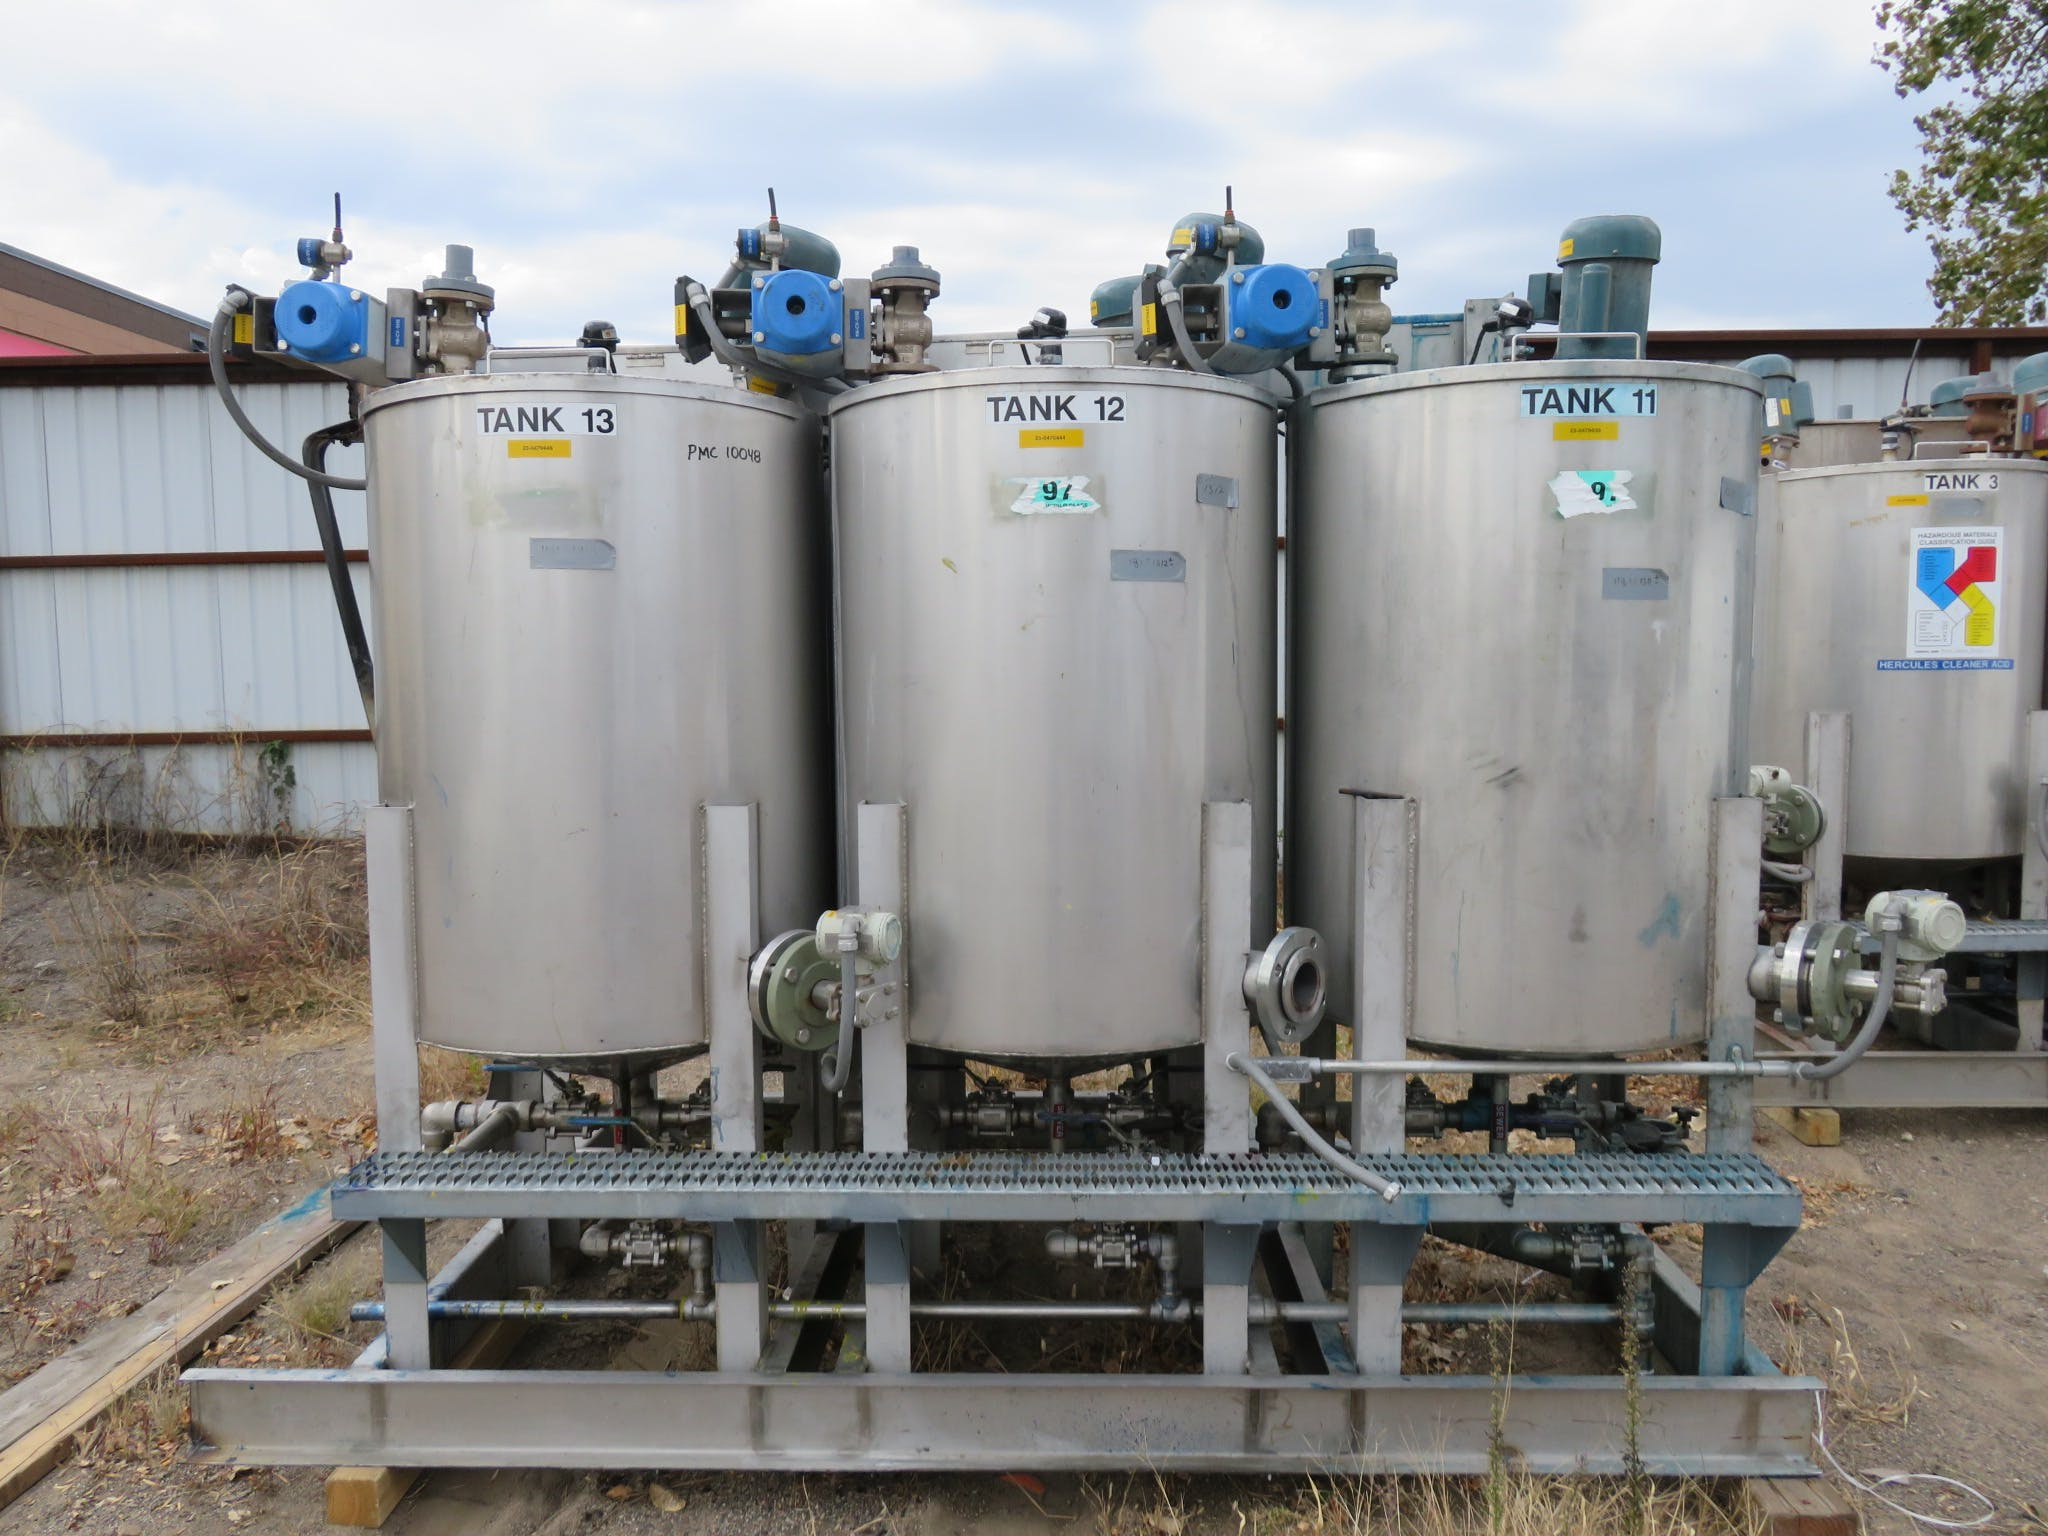 Stainless Steel Tanks - 5 Bank Stainless Steel Tanks, capacity 118 liters - sold by Peak Machinery Inc.